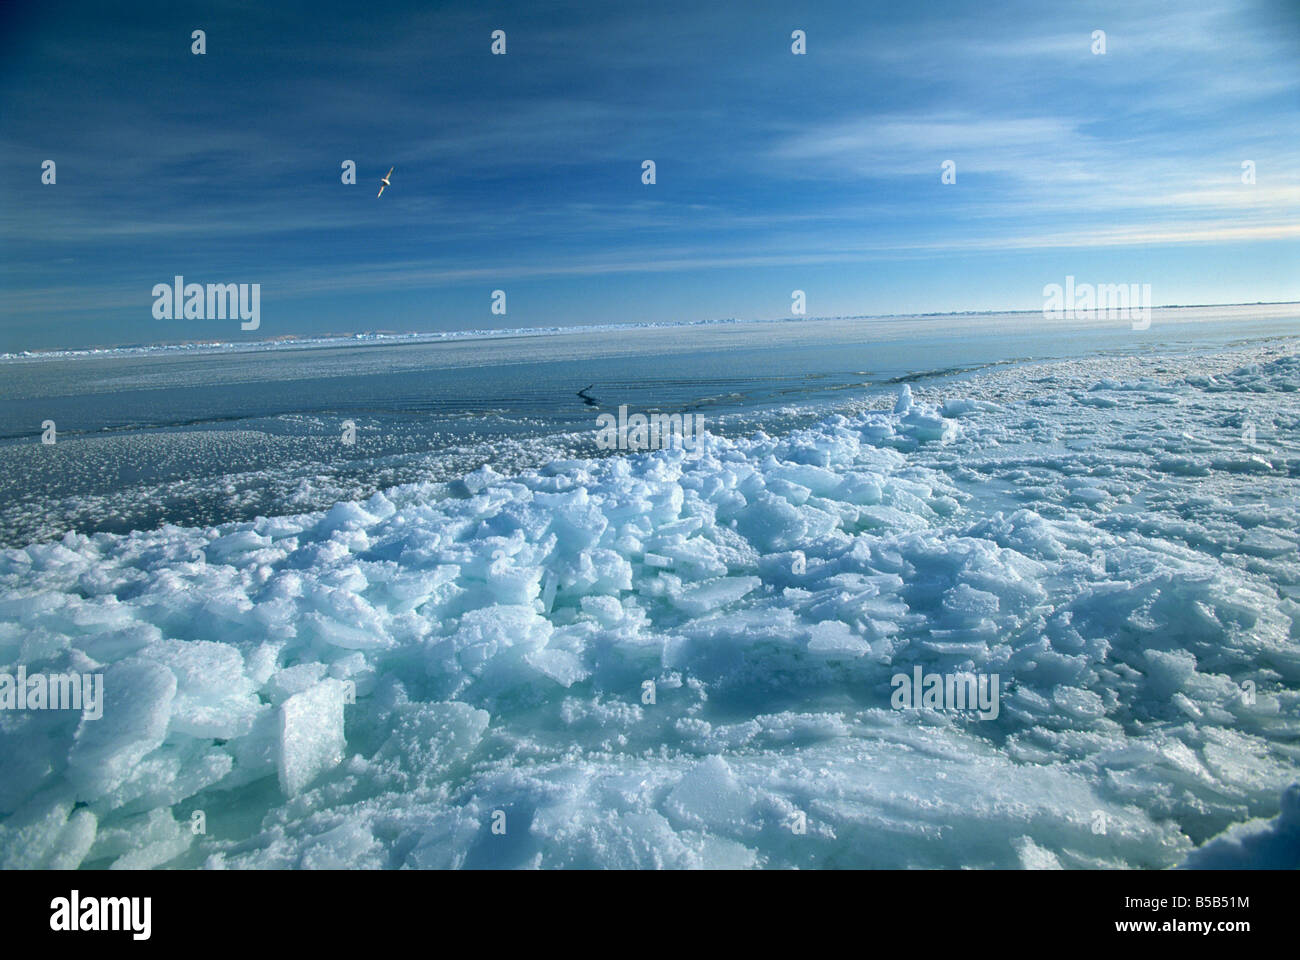 Fractured ice and newly frozen ice at edge of an open lead, Spitsbergen, Svalbard, Arctic, Norway, Scandinavia - Stock Image